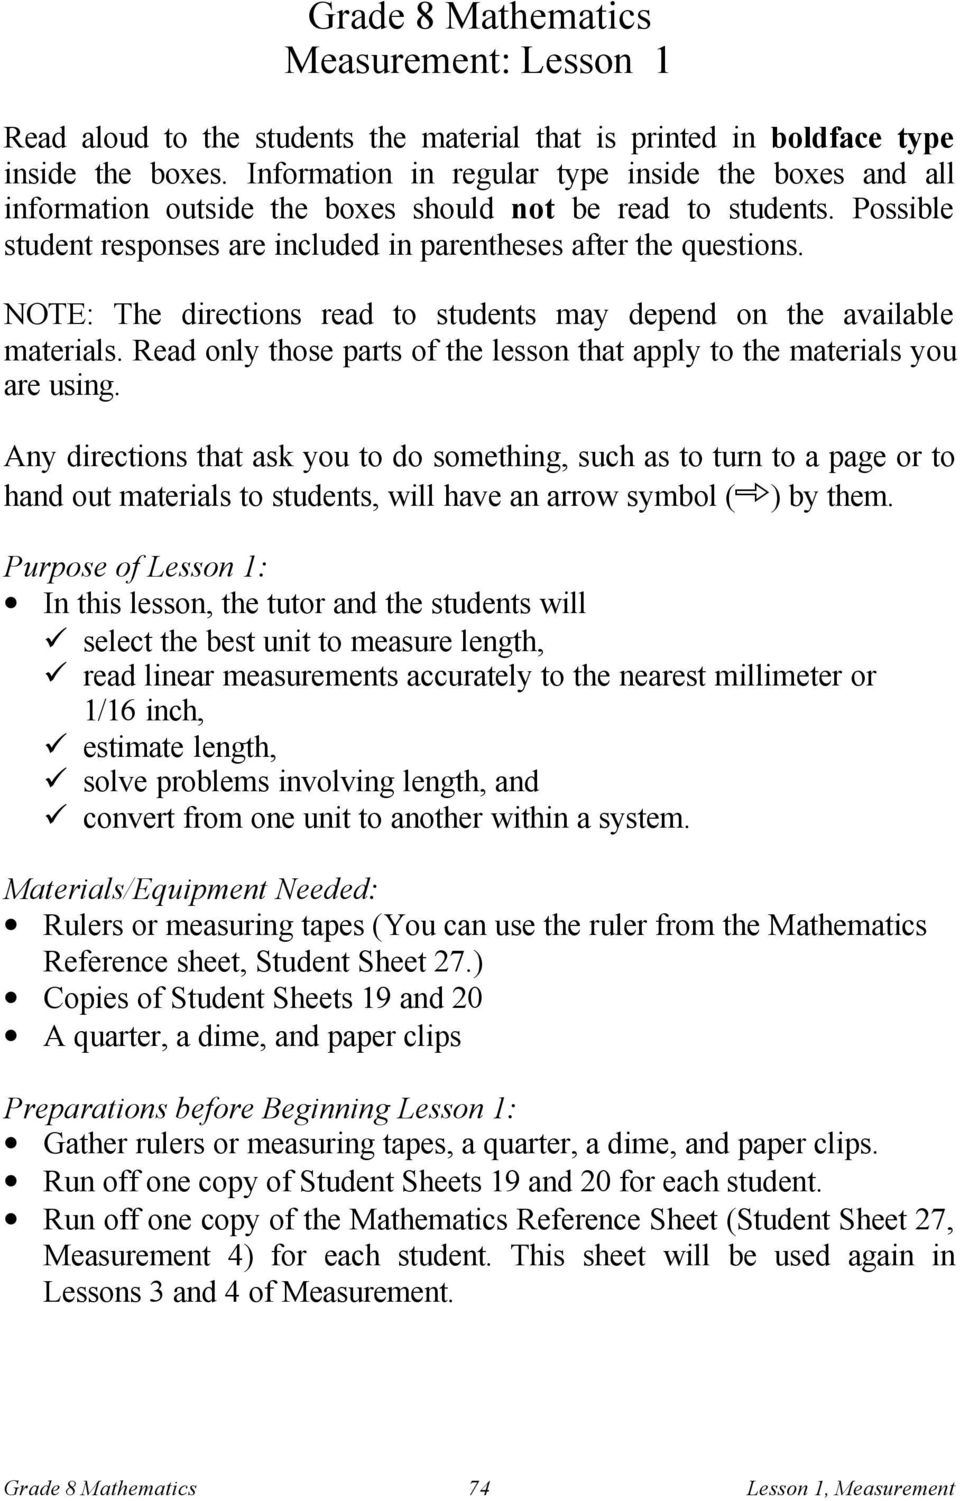 NOTE: The directions read to students may depend on the available materials. Read only those parts of the lesson that apply to the materials you are using.